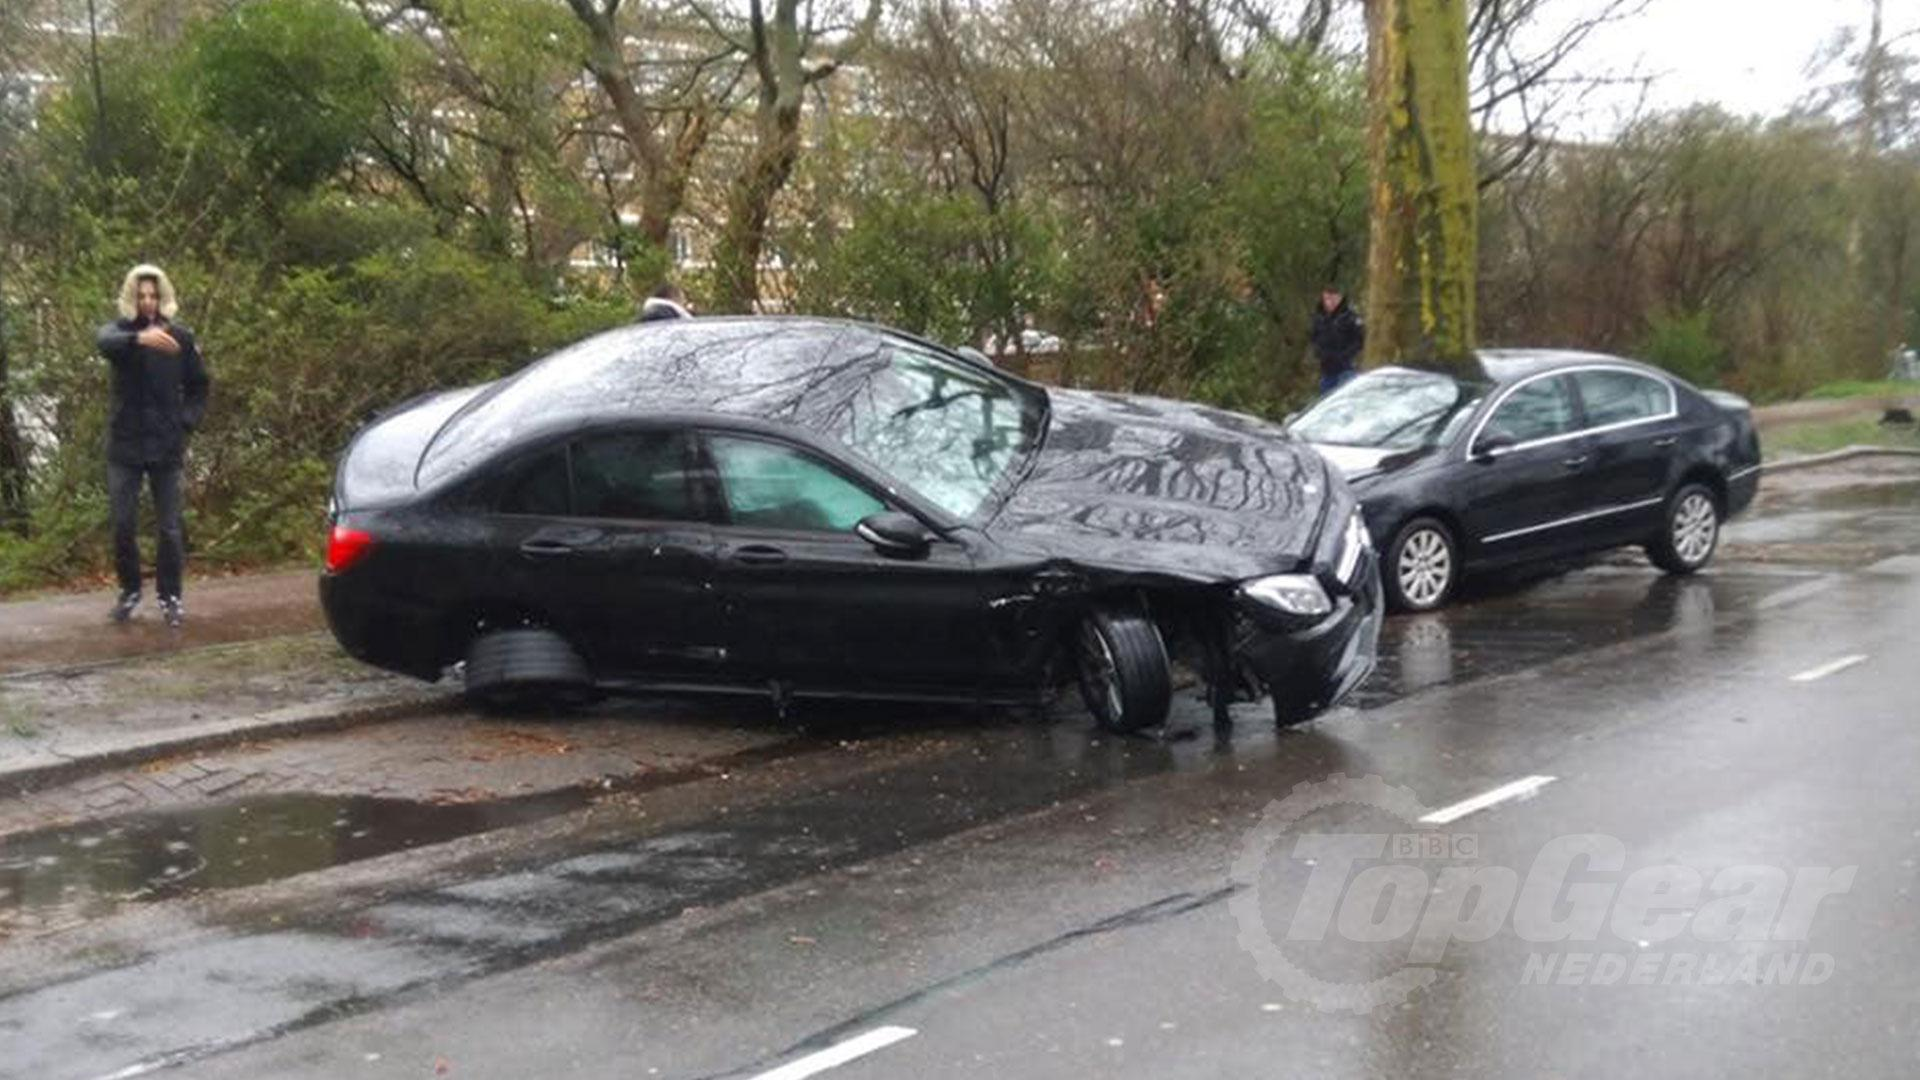 Mercedes-AMG C 63 crasht in Den Haag